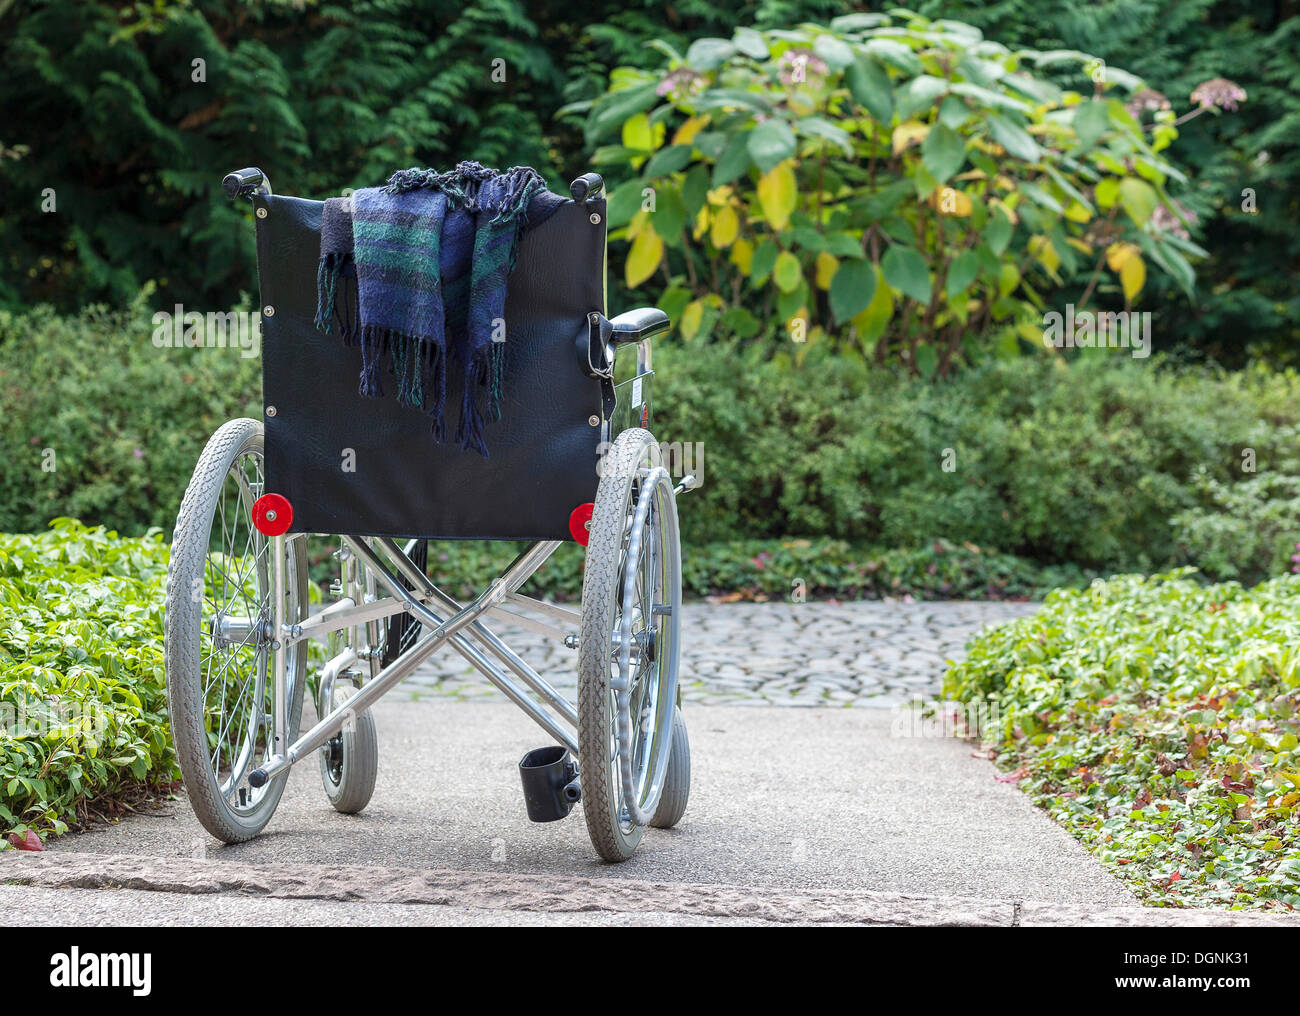 Abandoned wheelchair in a green area, Berlin, Germany Stock Photo